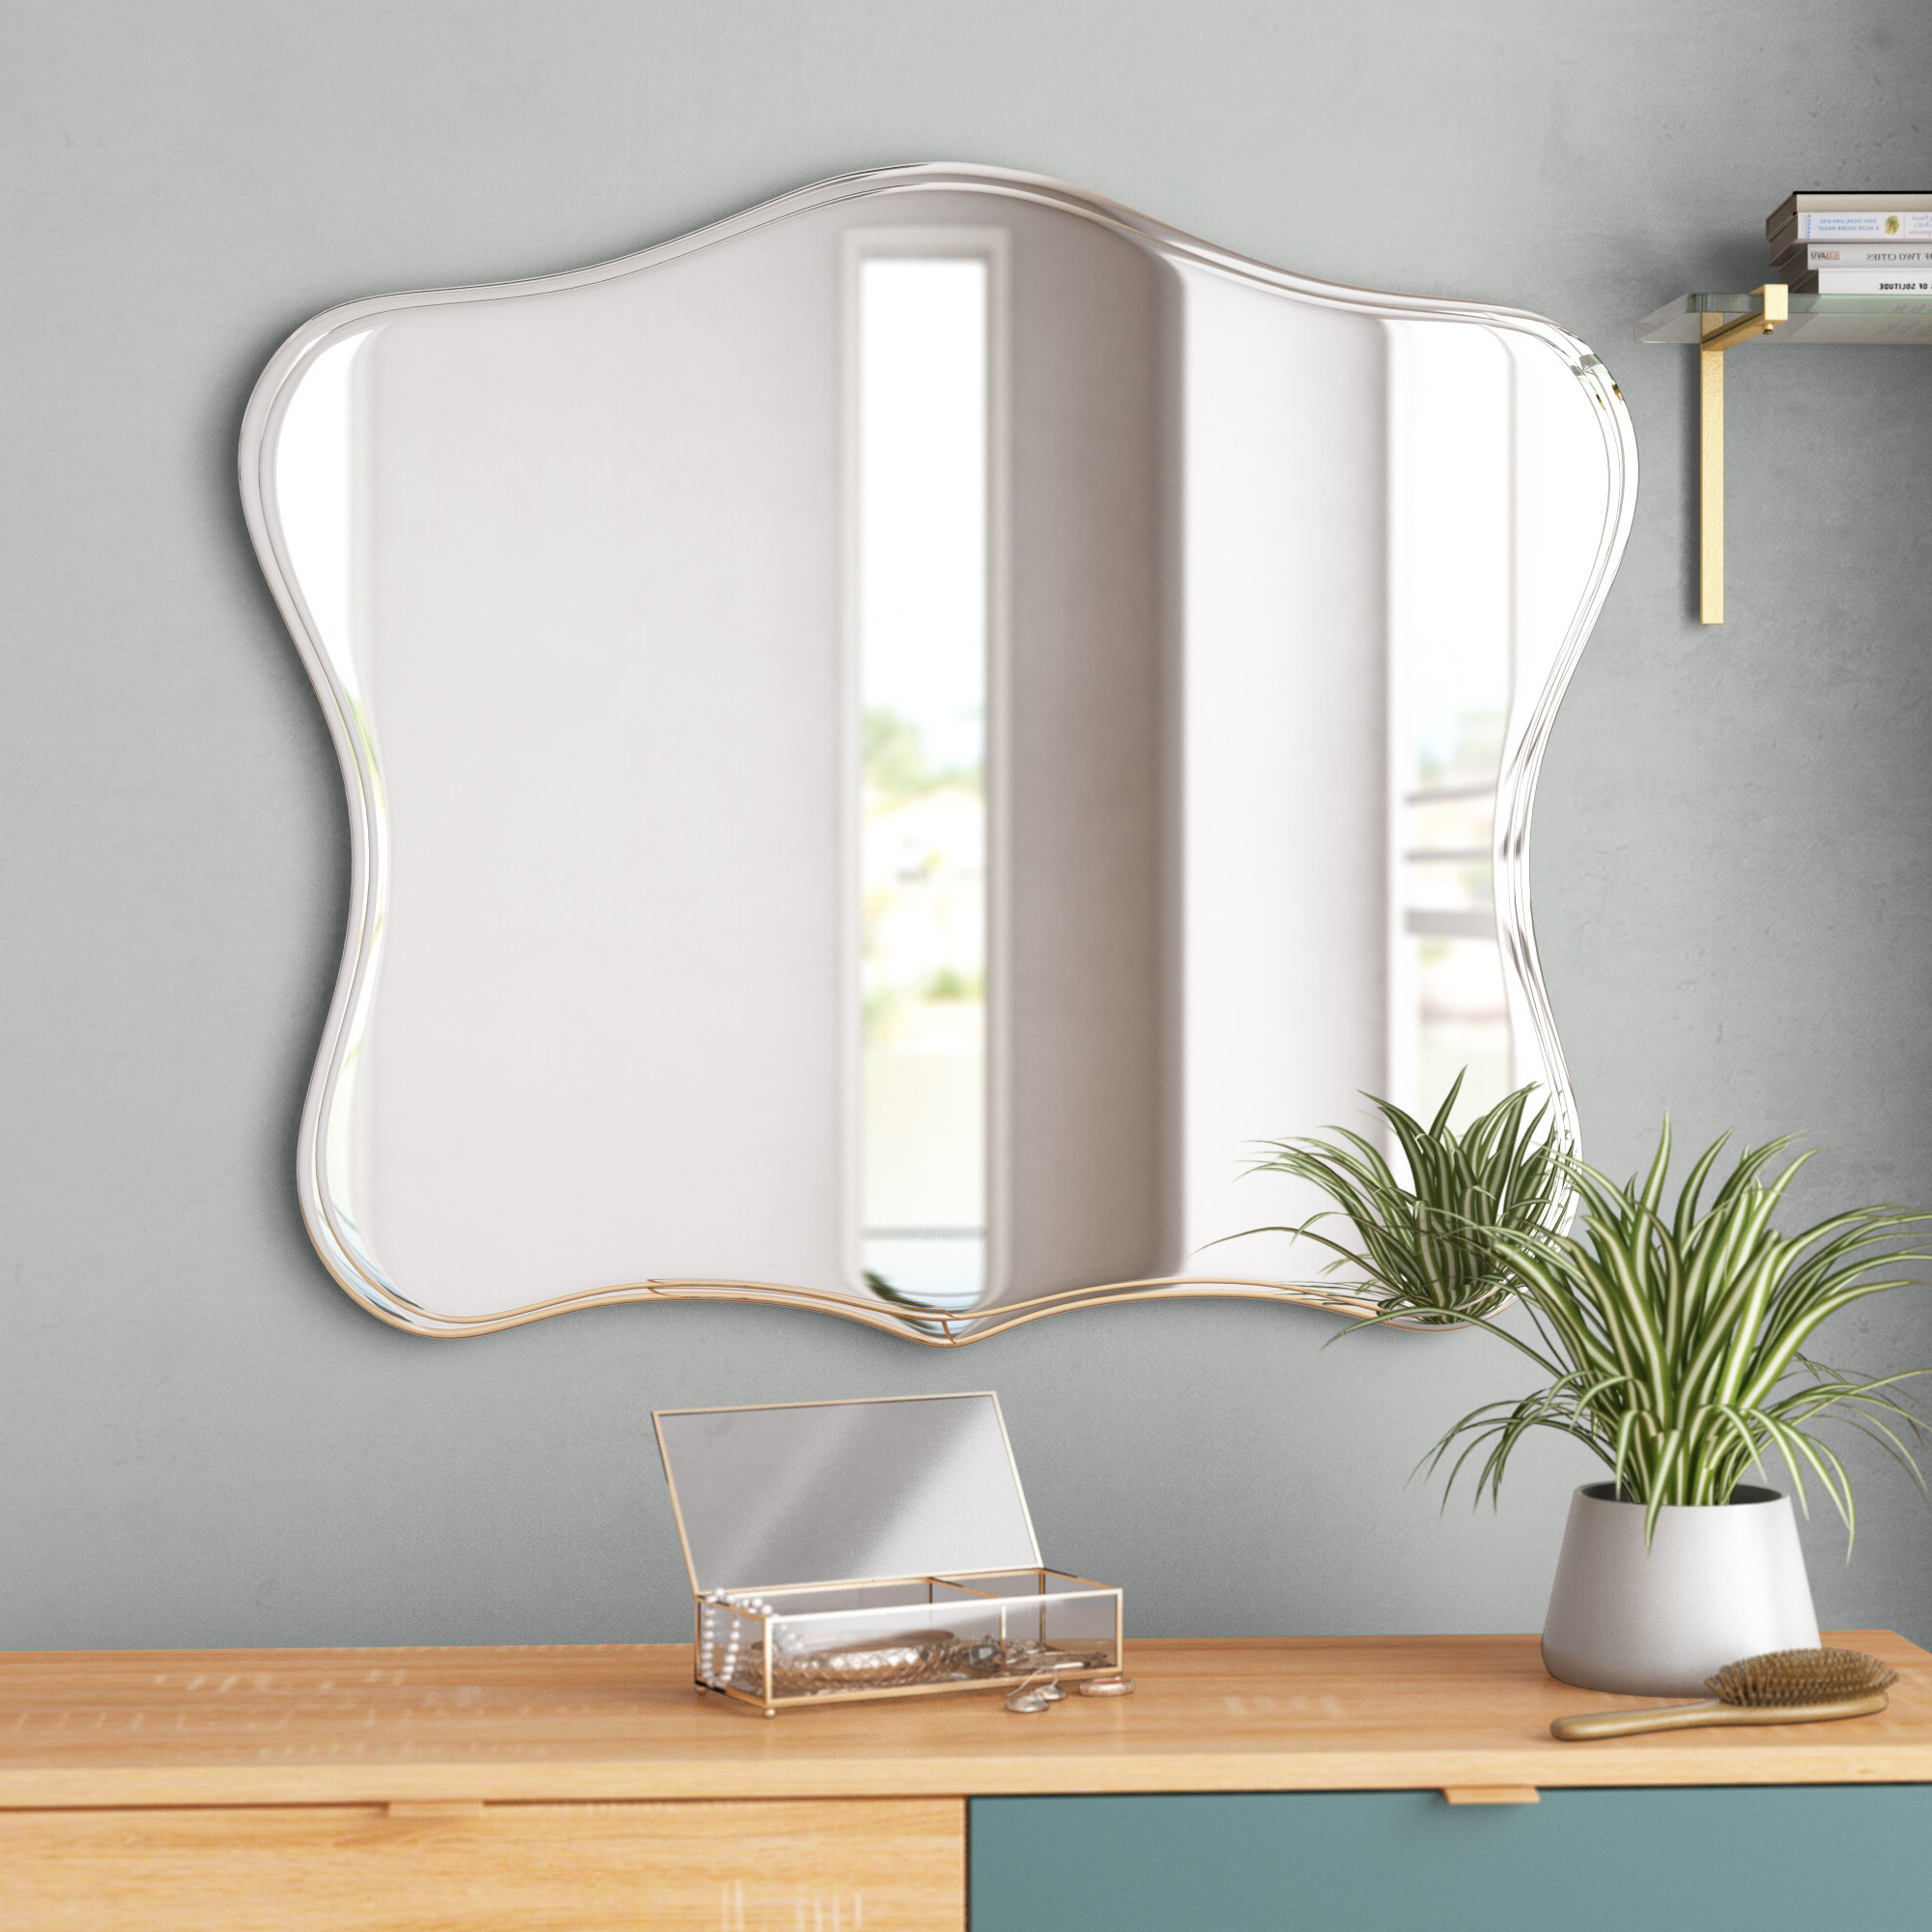 Logan Frameless Wall Mirrors Regarding 2019 Titsworth Frameless Fancy Wall Mirror (View 20 of 20)